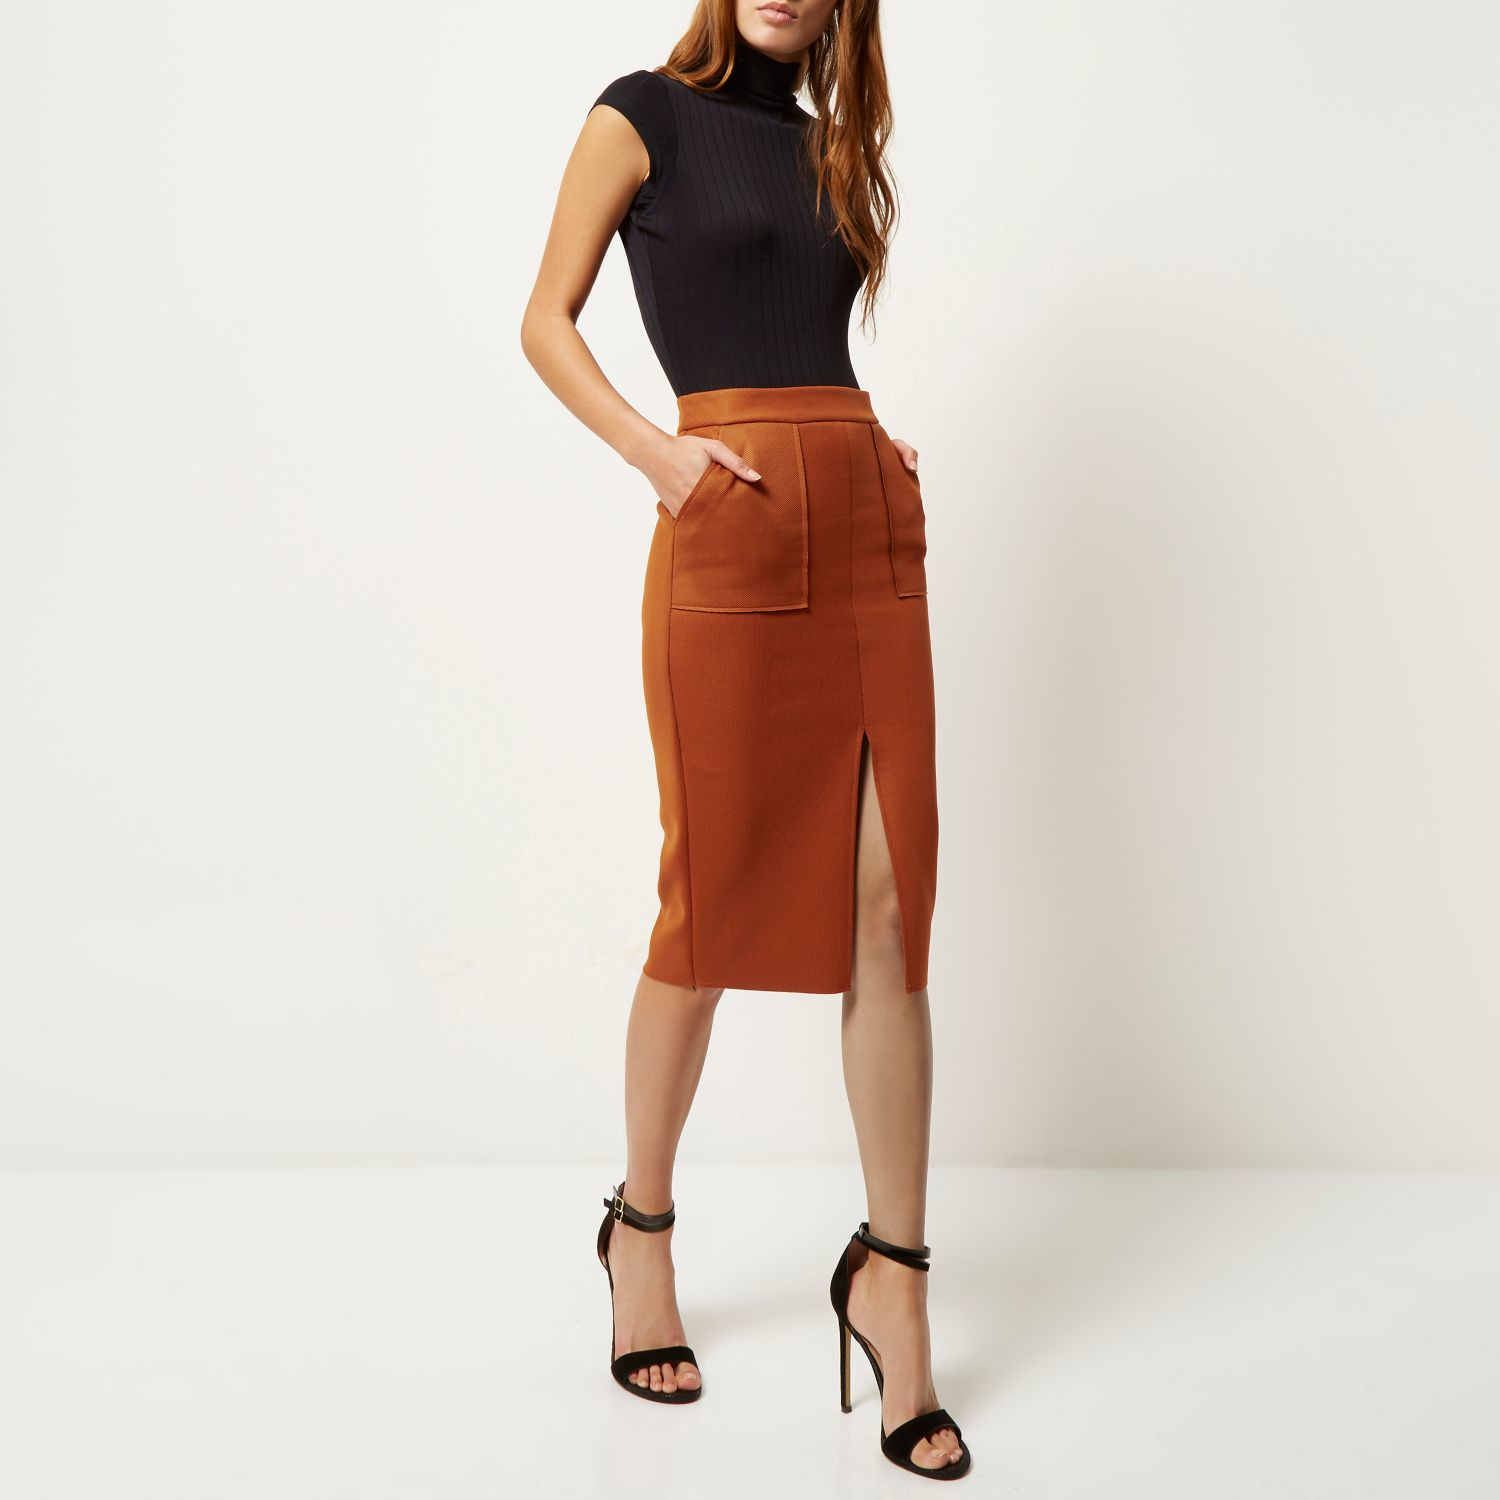 Peach leather skirt river island – Modern skirts blog for you